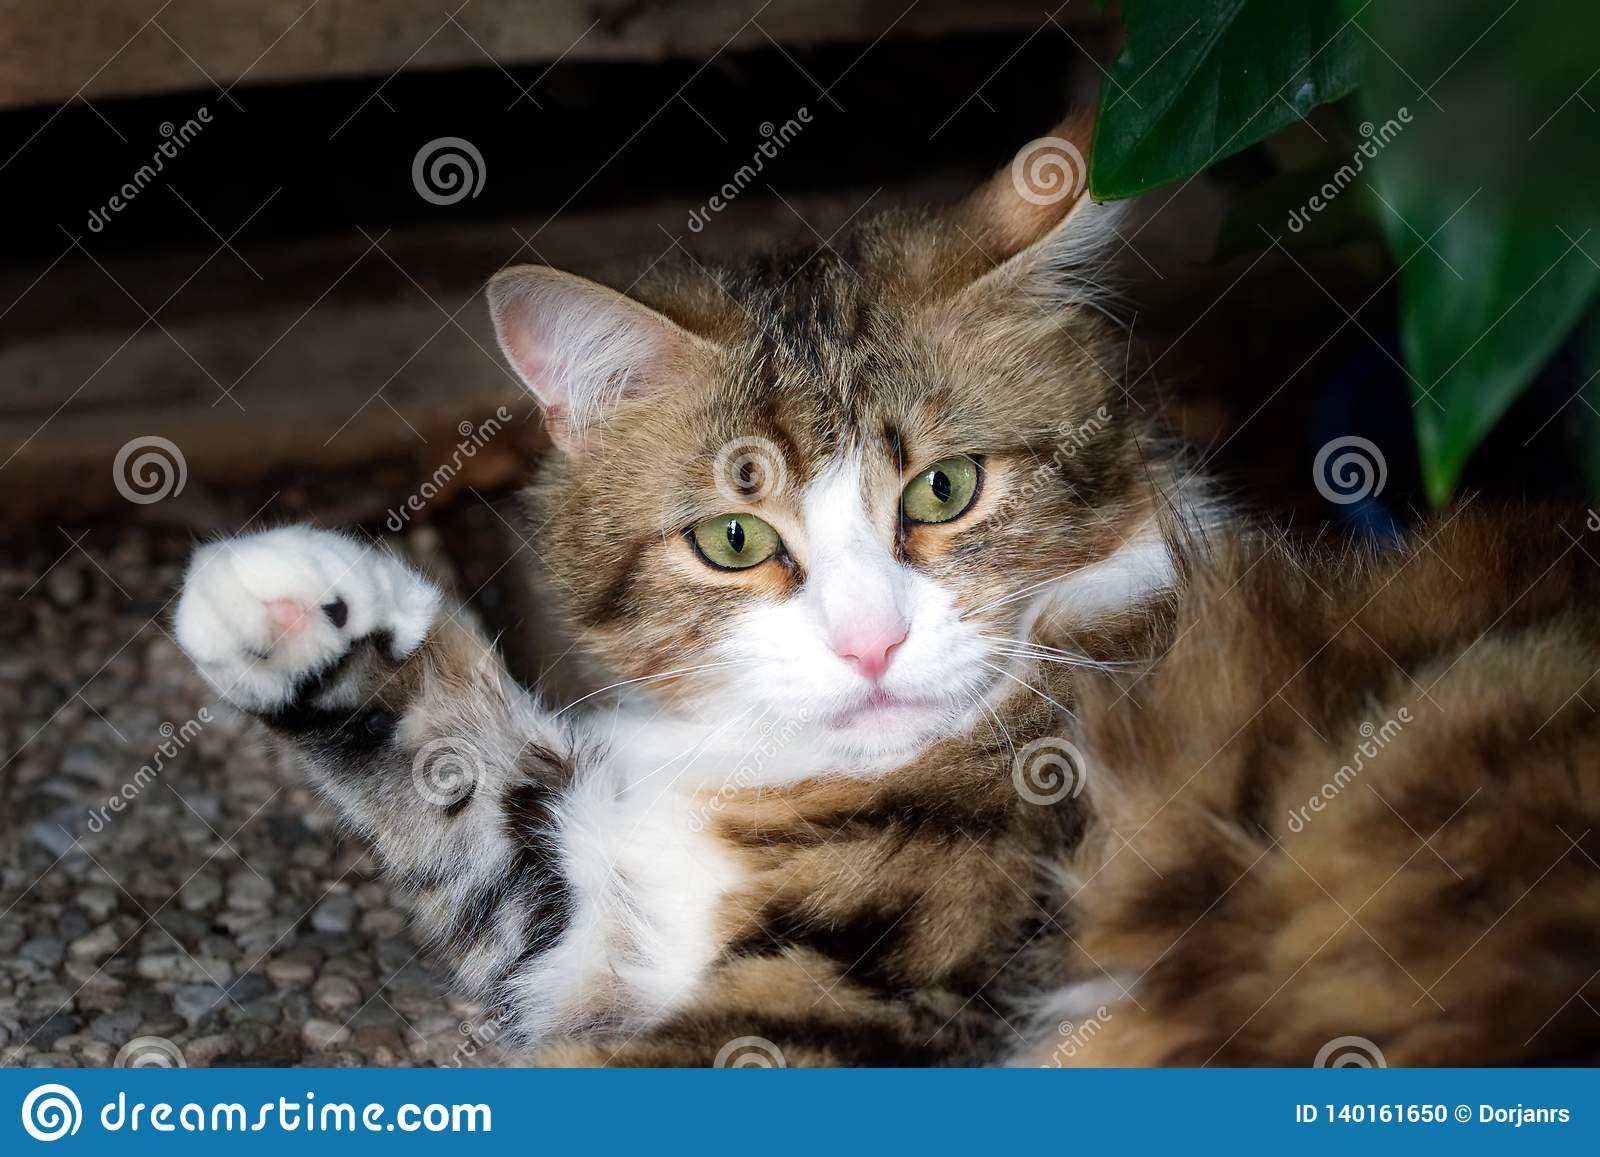 White and brown striped cat raising its paw